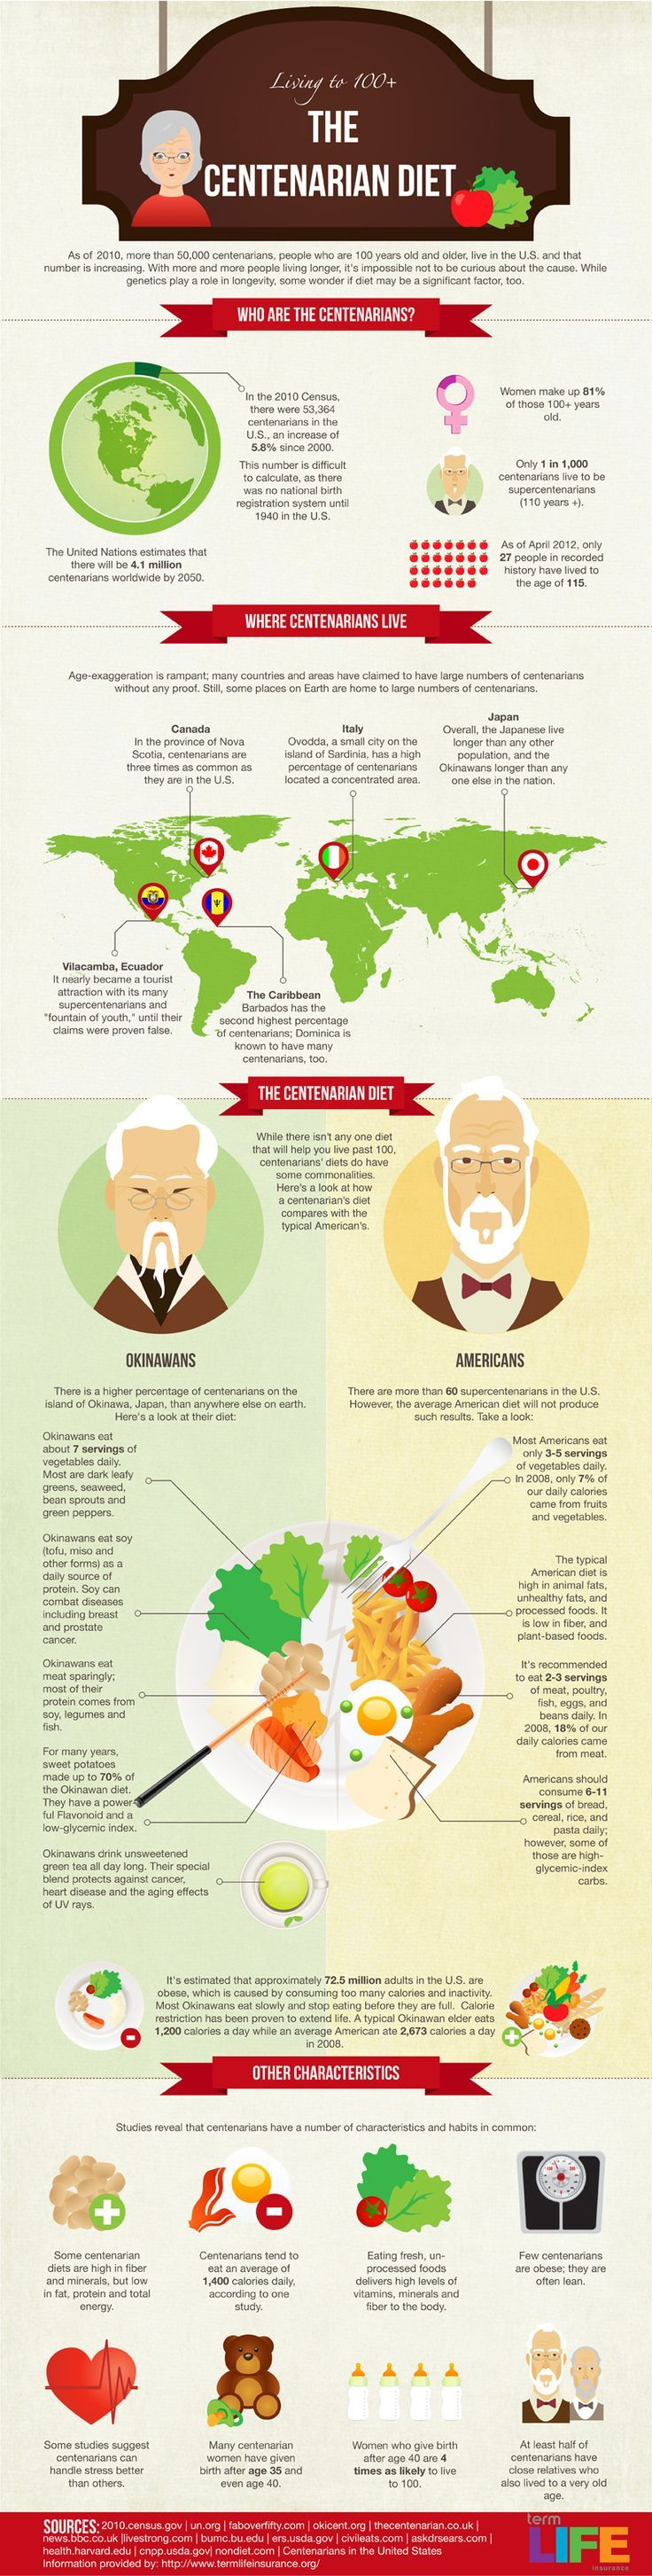 The centenarian diet: There aren't that many people who live to see 100, but few of them are obese. What else can we learn from centenarians?